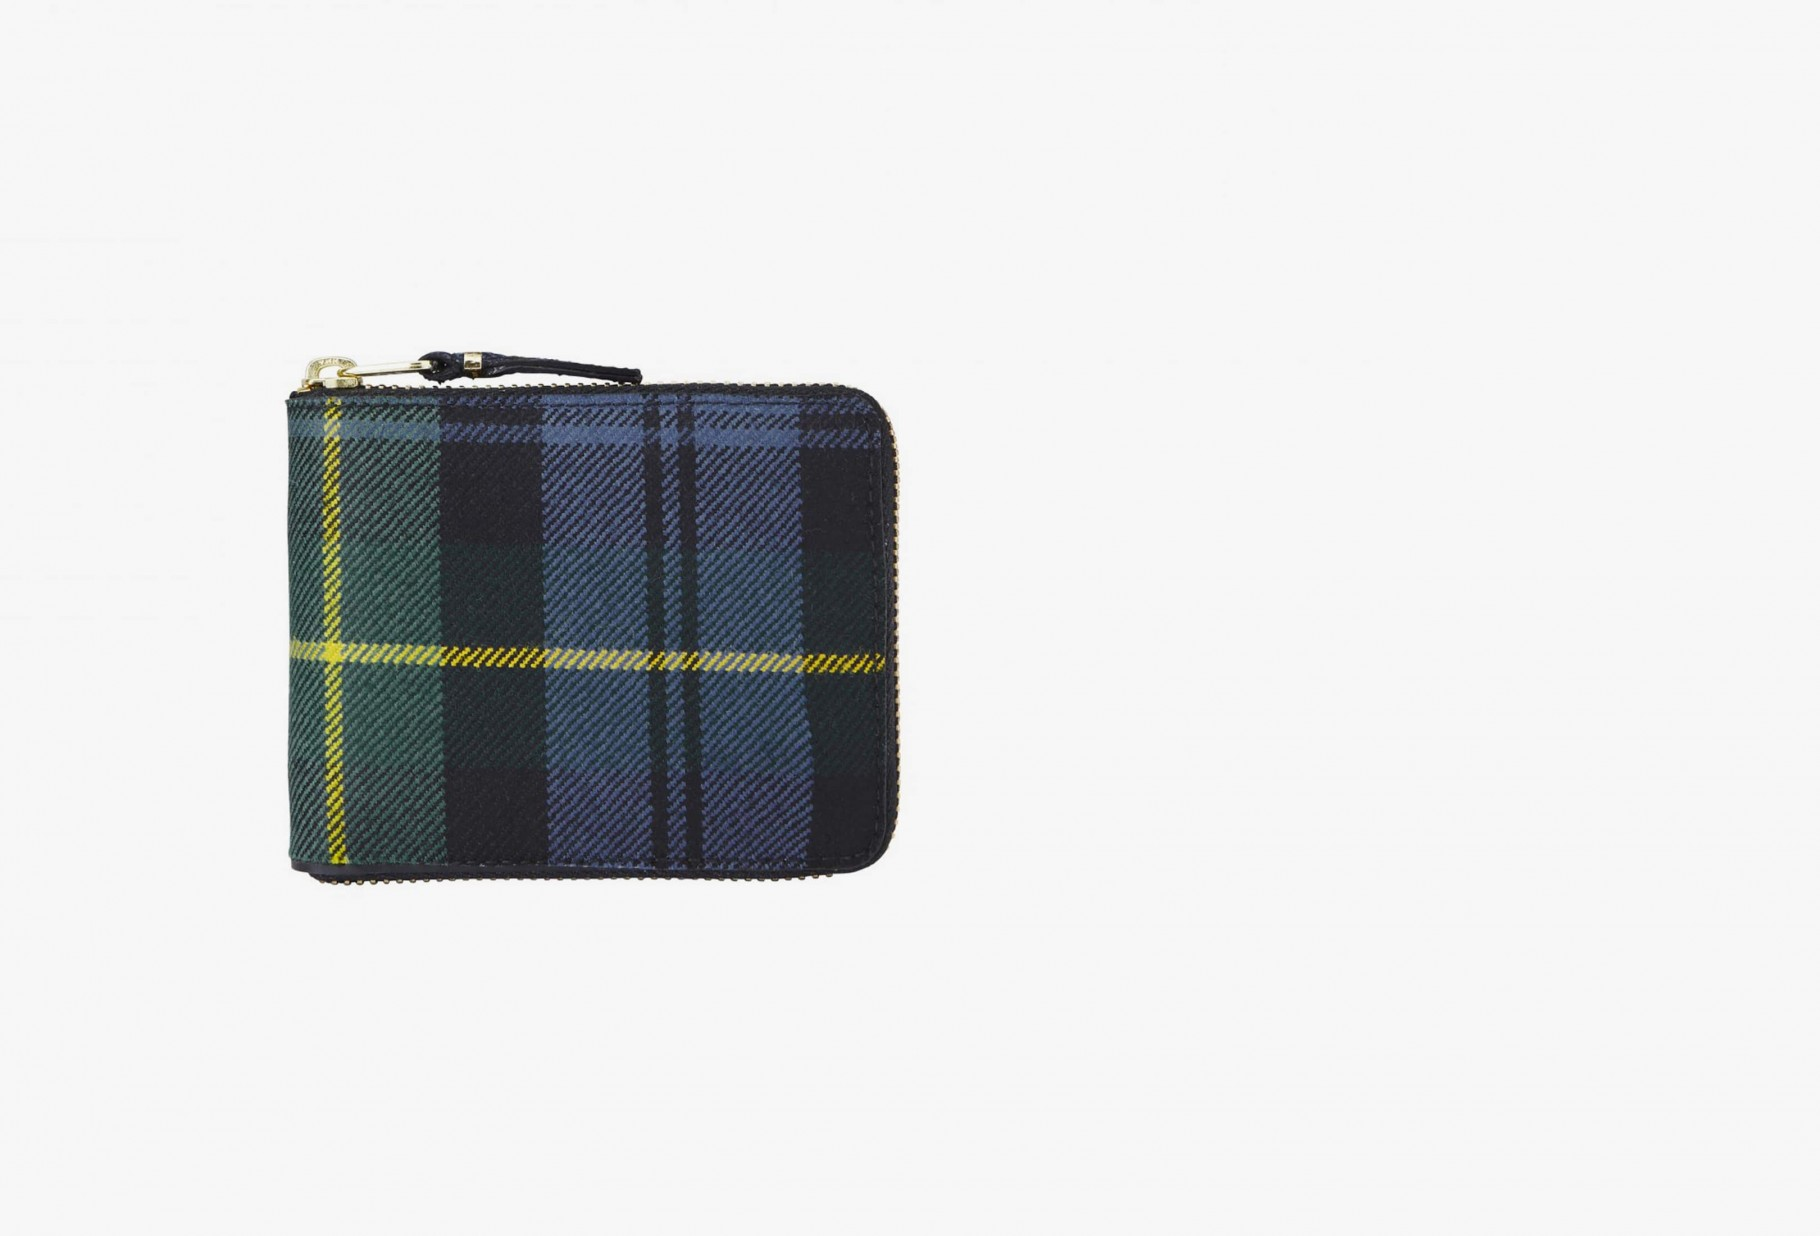 CDG WALLETS / Cdg wallet tartan sa7100tp Green